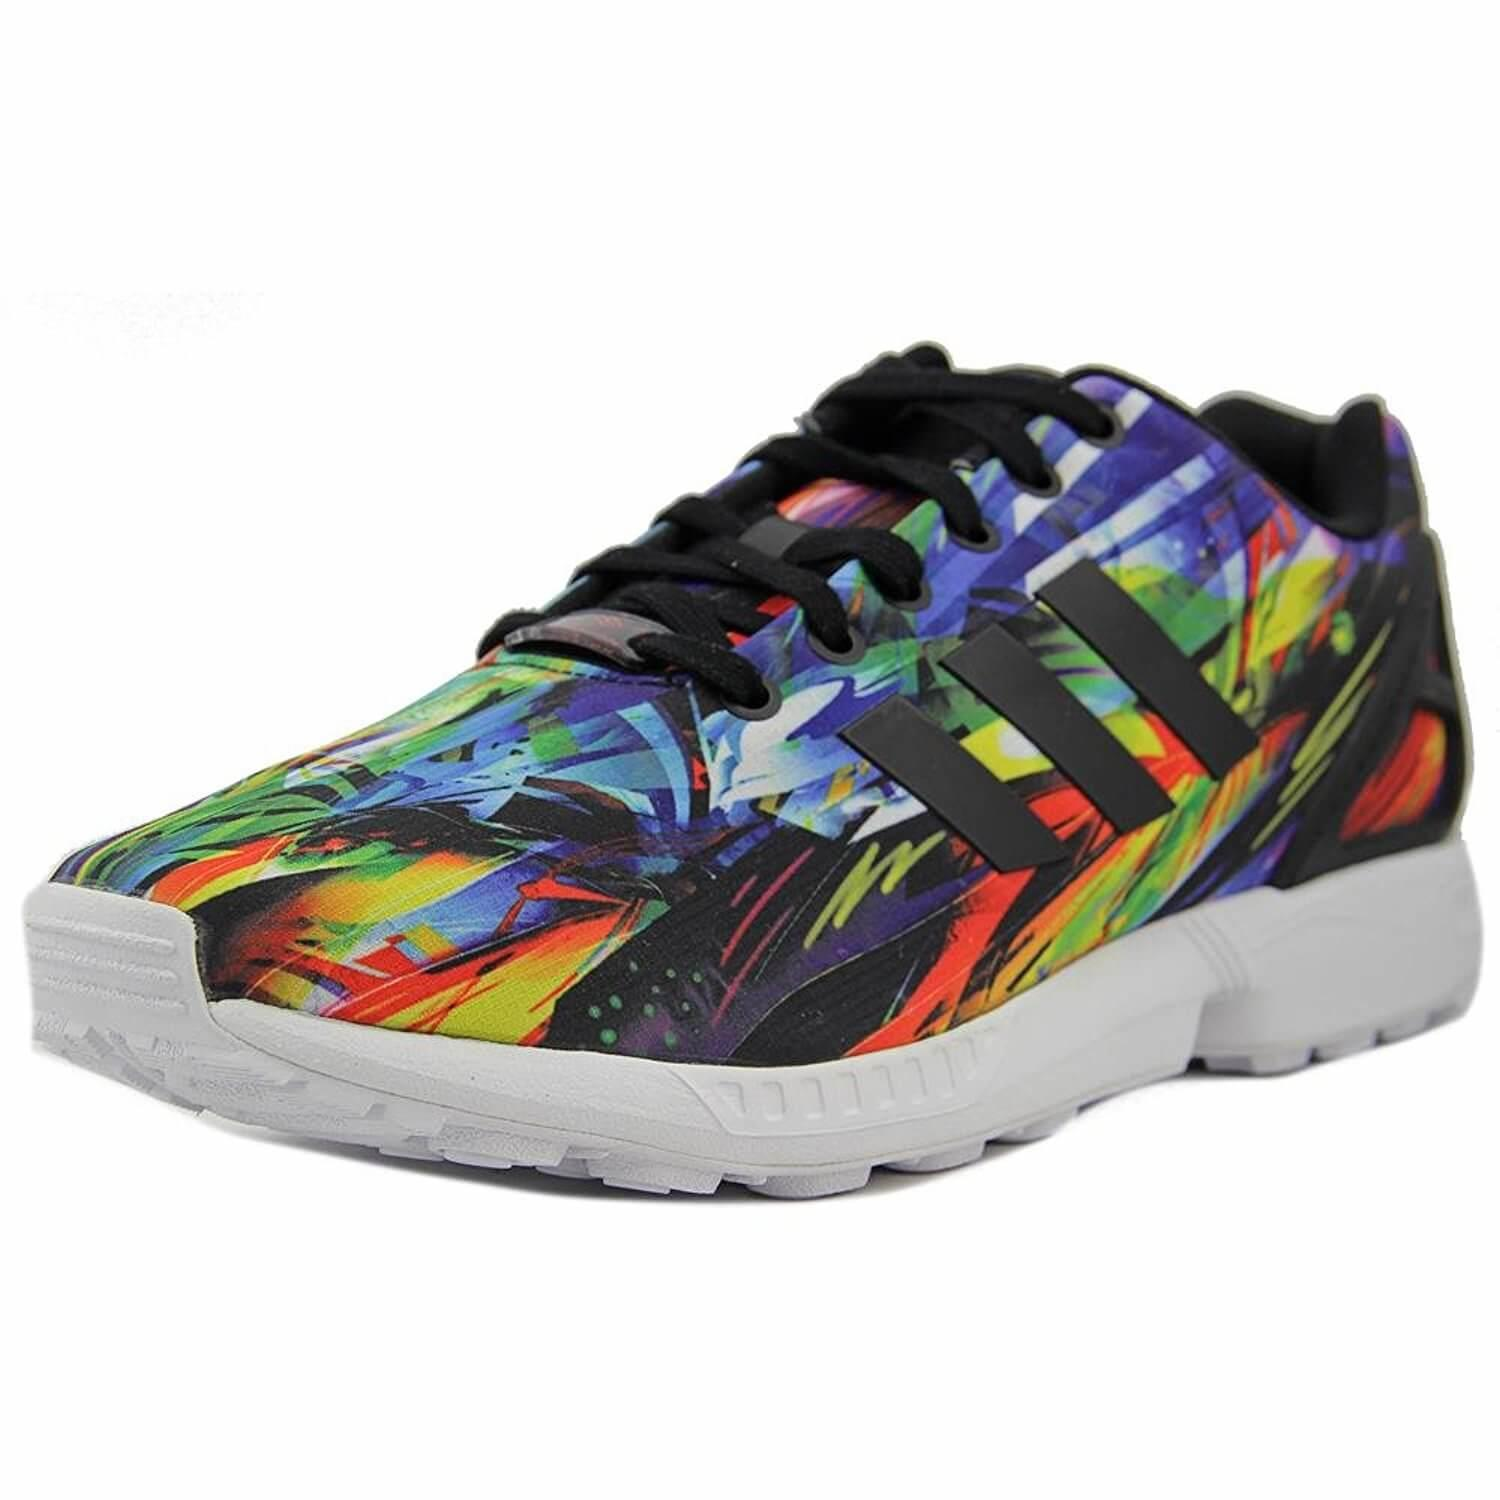 400e456f653cd7 Best Colorful Running Shoes Reviewed in 2019 | RunnerClick